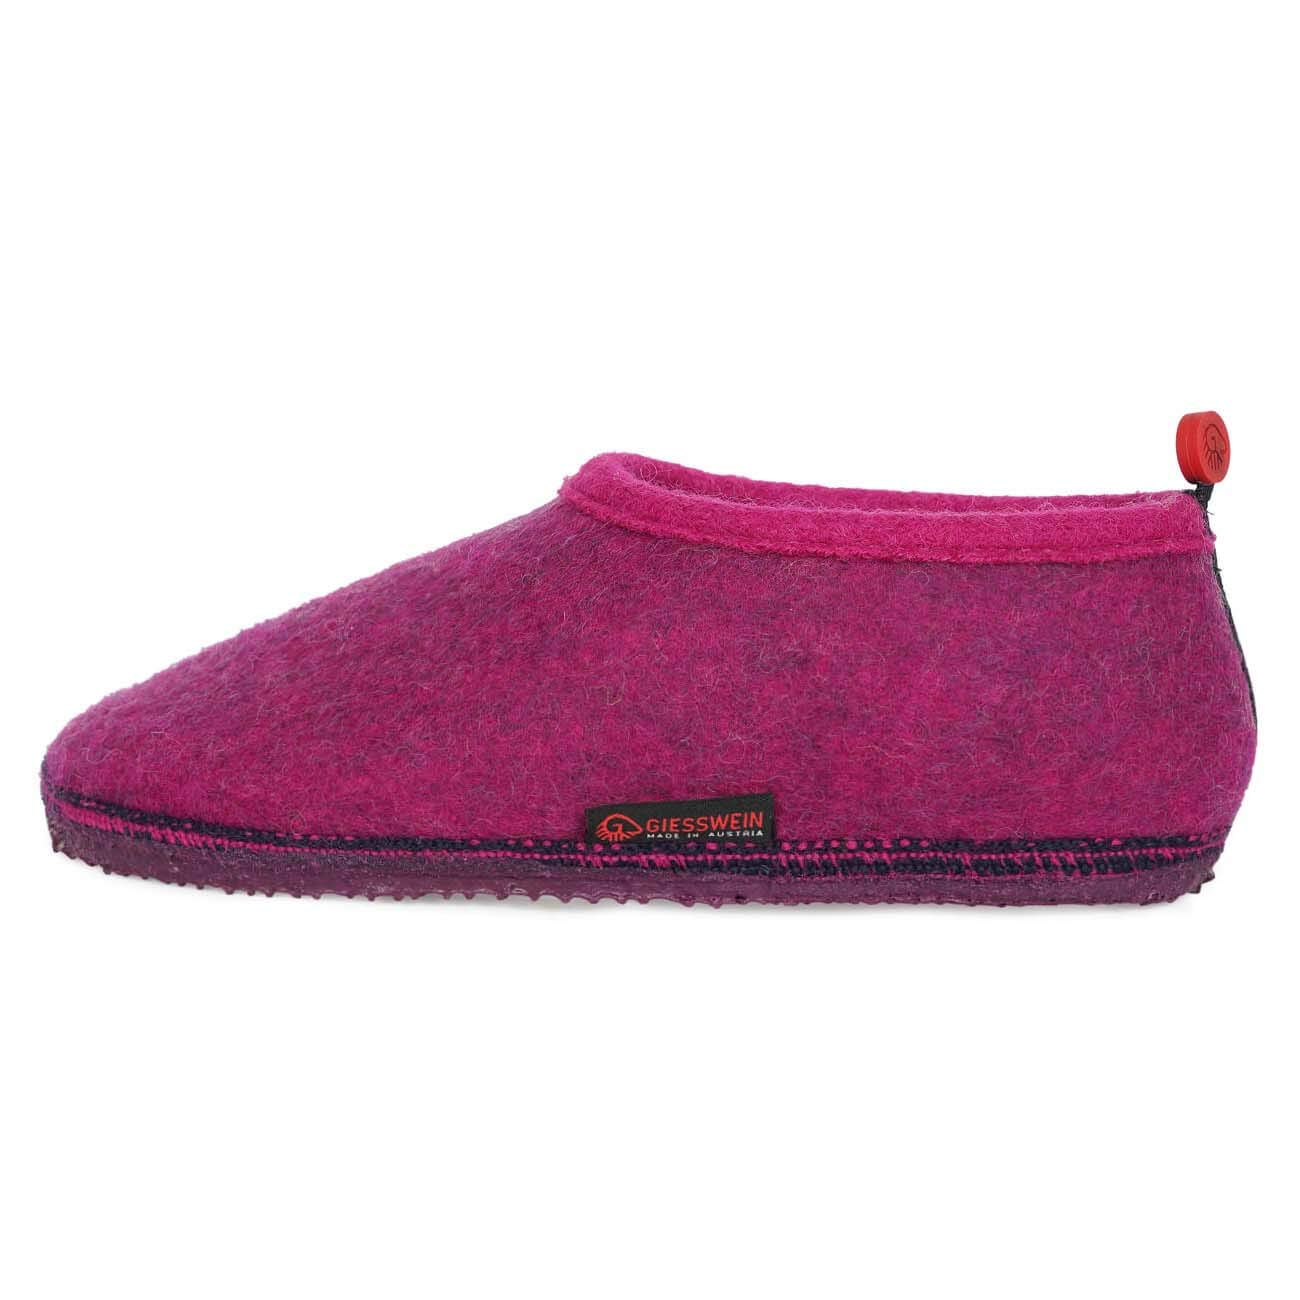 Giesswein Giesswein Tambach, Chaussons Chaussons Bas Femme Violet (Traube 374) 374) 4c5a871 - therethere.space